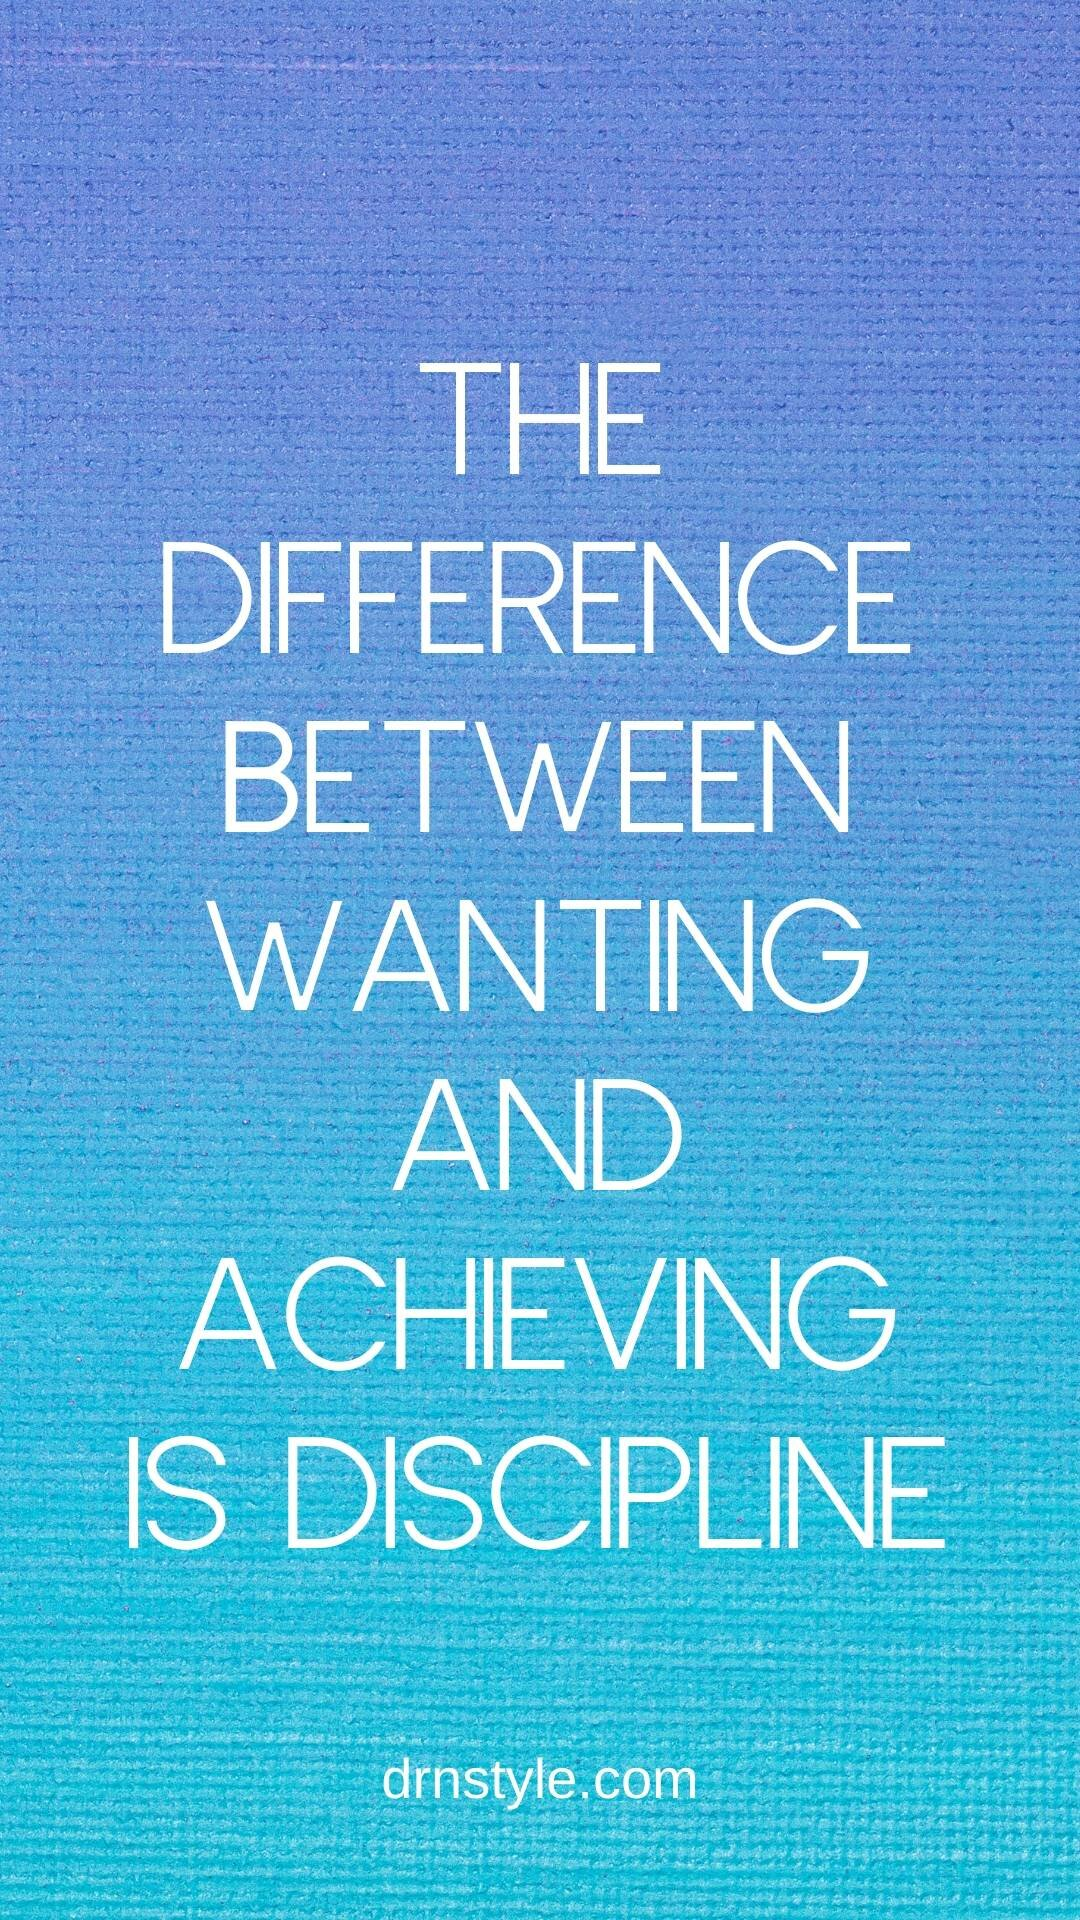 The difference between wanting and achieving is discipline.